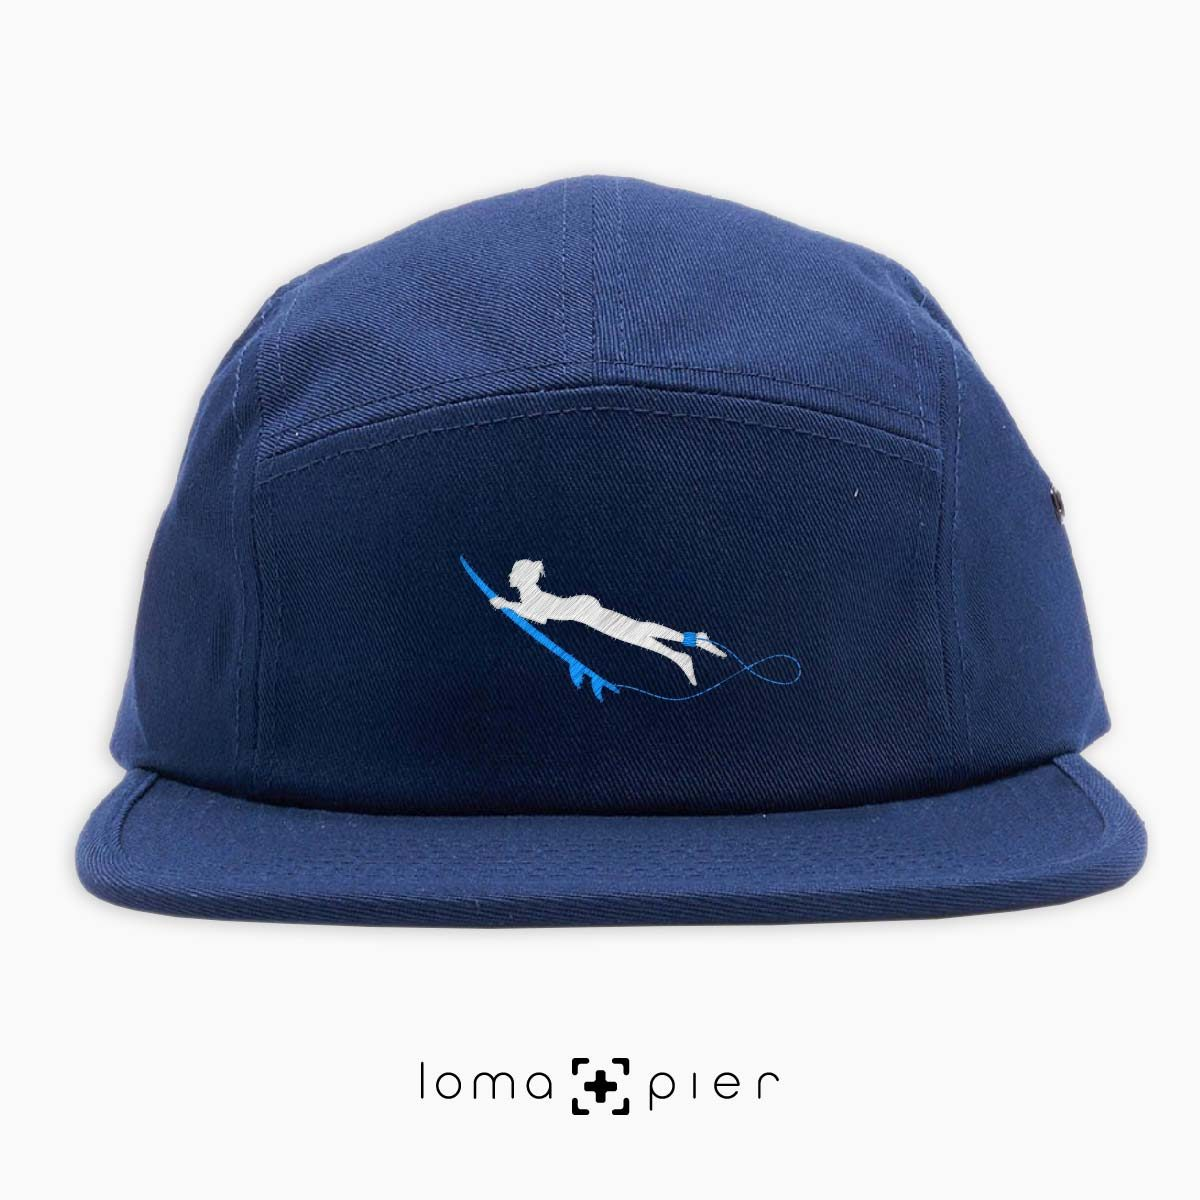 DUCK NAKED surfer icon embroidered on a navy blue cotton 5-panel hat by loma+pier hat store